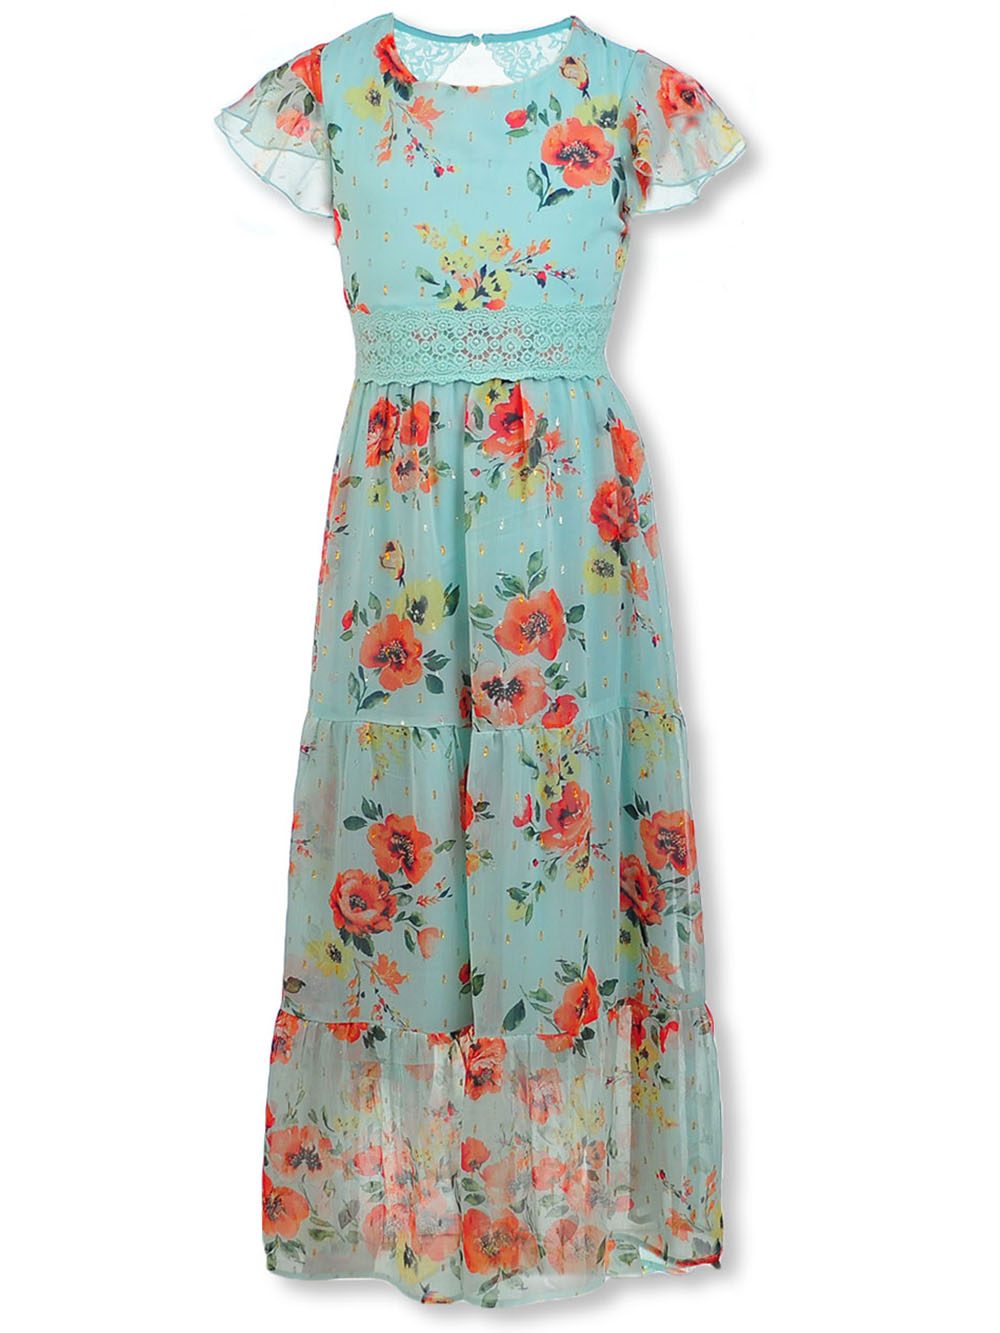 Girls' Floral Dress